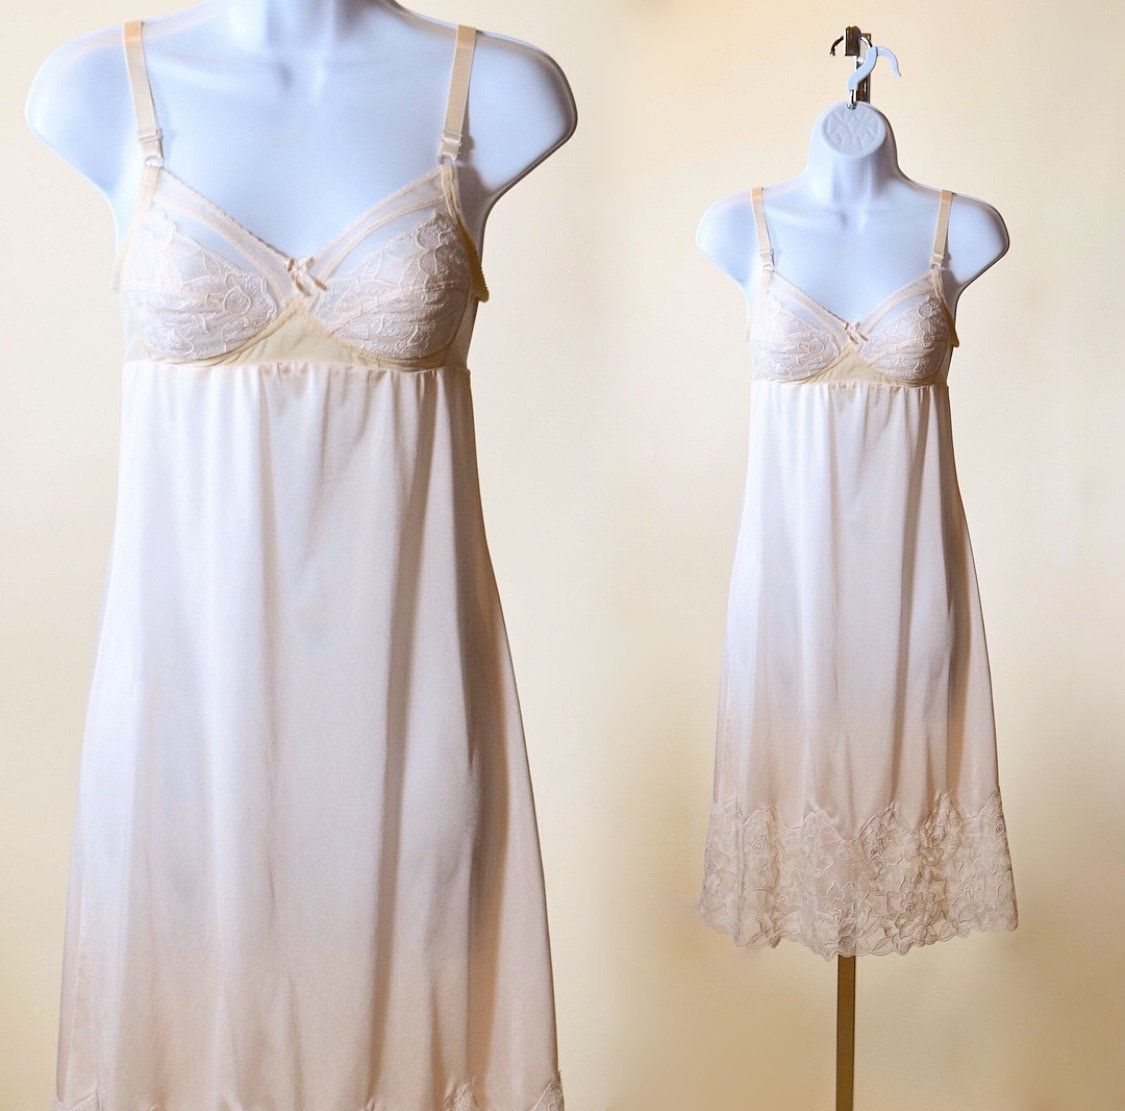 c83305e235a56 Classic sexy slip dress with built in bra! Authentic vintage, WaCoal brand  Nylon lace Best fits women's XS ( PLEASE CHECK MEASUREMENTS FOR MORE  ACCURACY ...